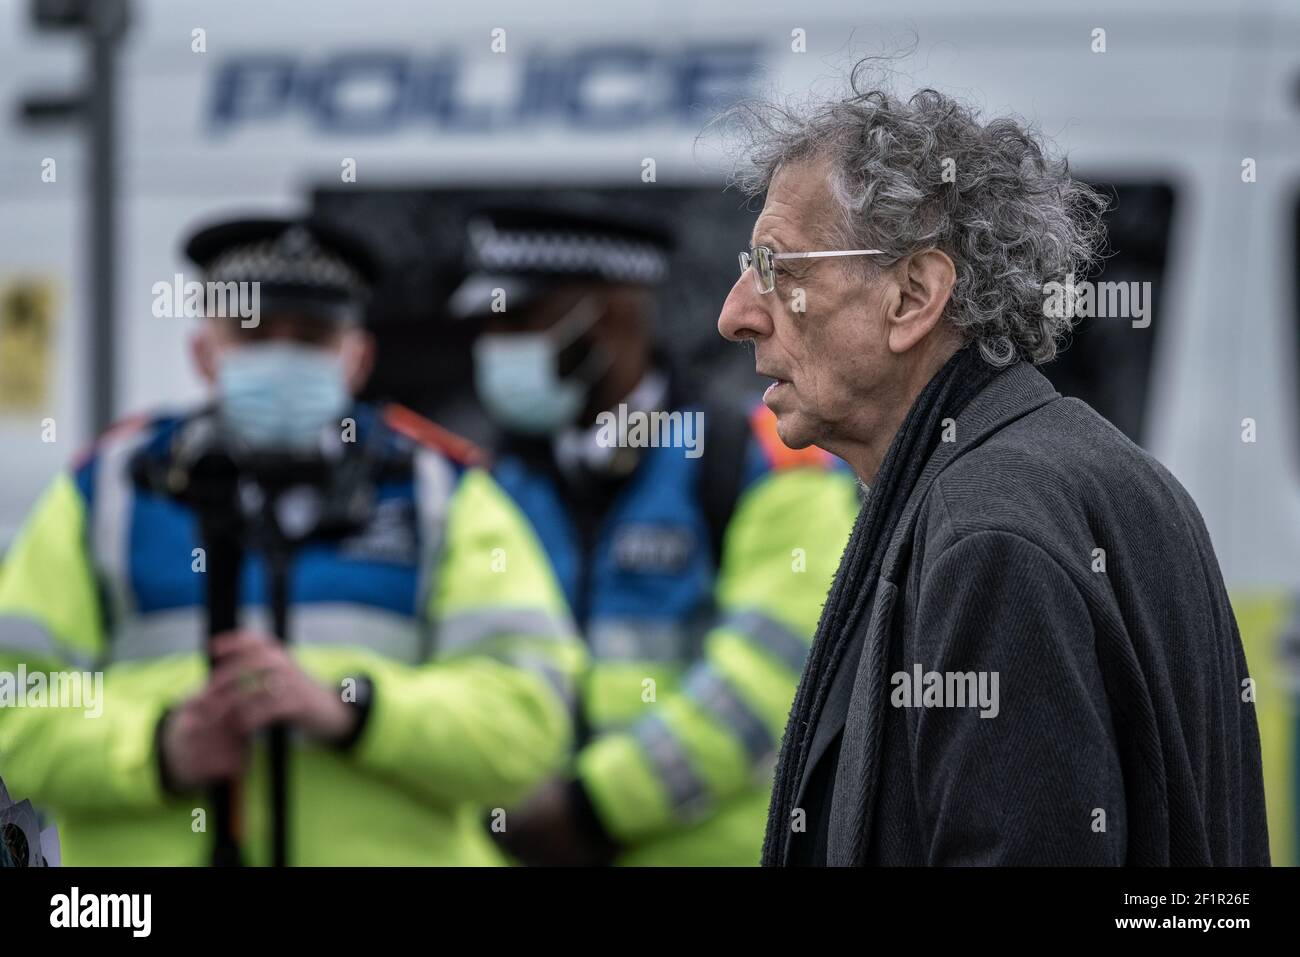 Coronavirus: Piers Corbyn attends an attempted anti-lockdown event of 20-30 protesters on Richmond Green in south east London, UK. Stock Photo